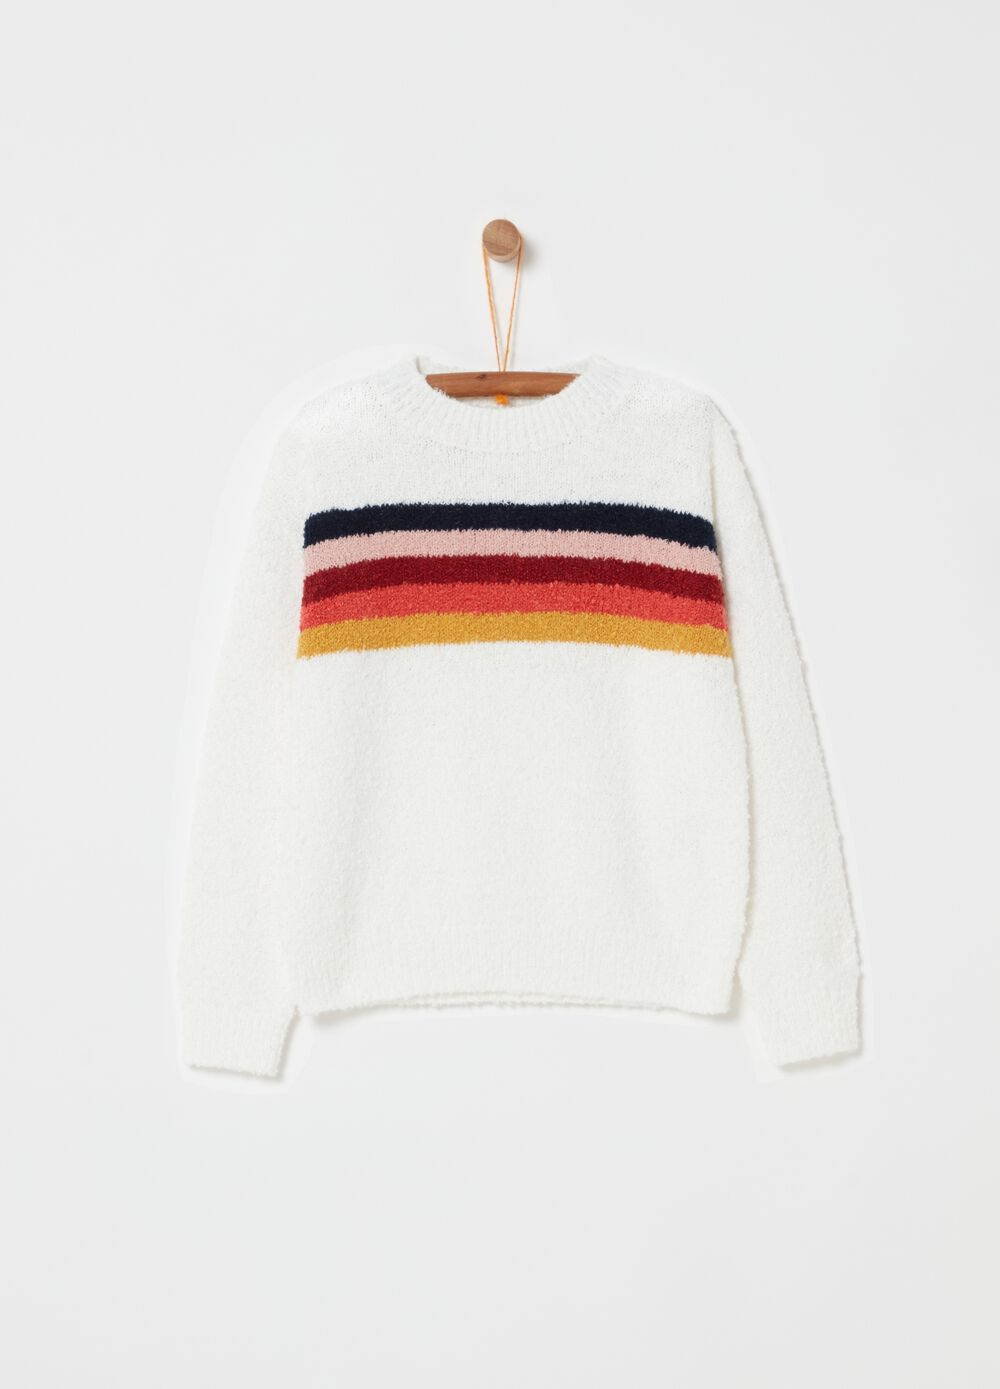 Knitted top with striped embroidery and ribbing